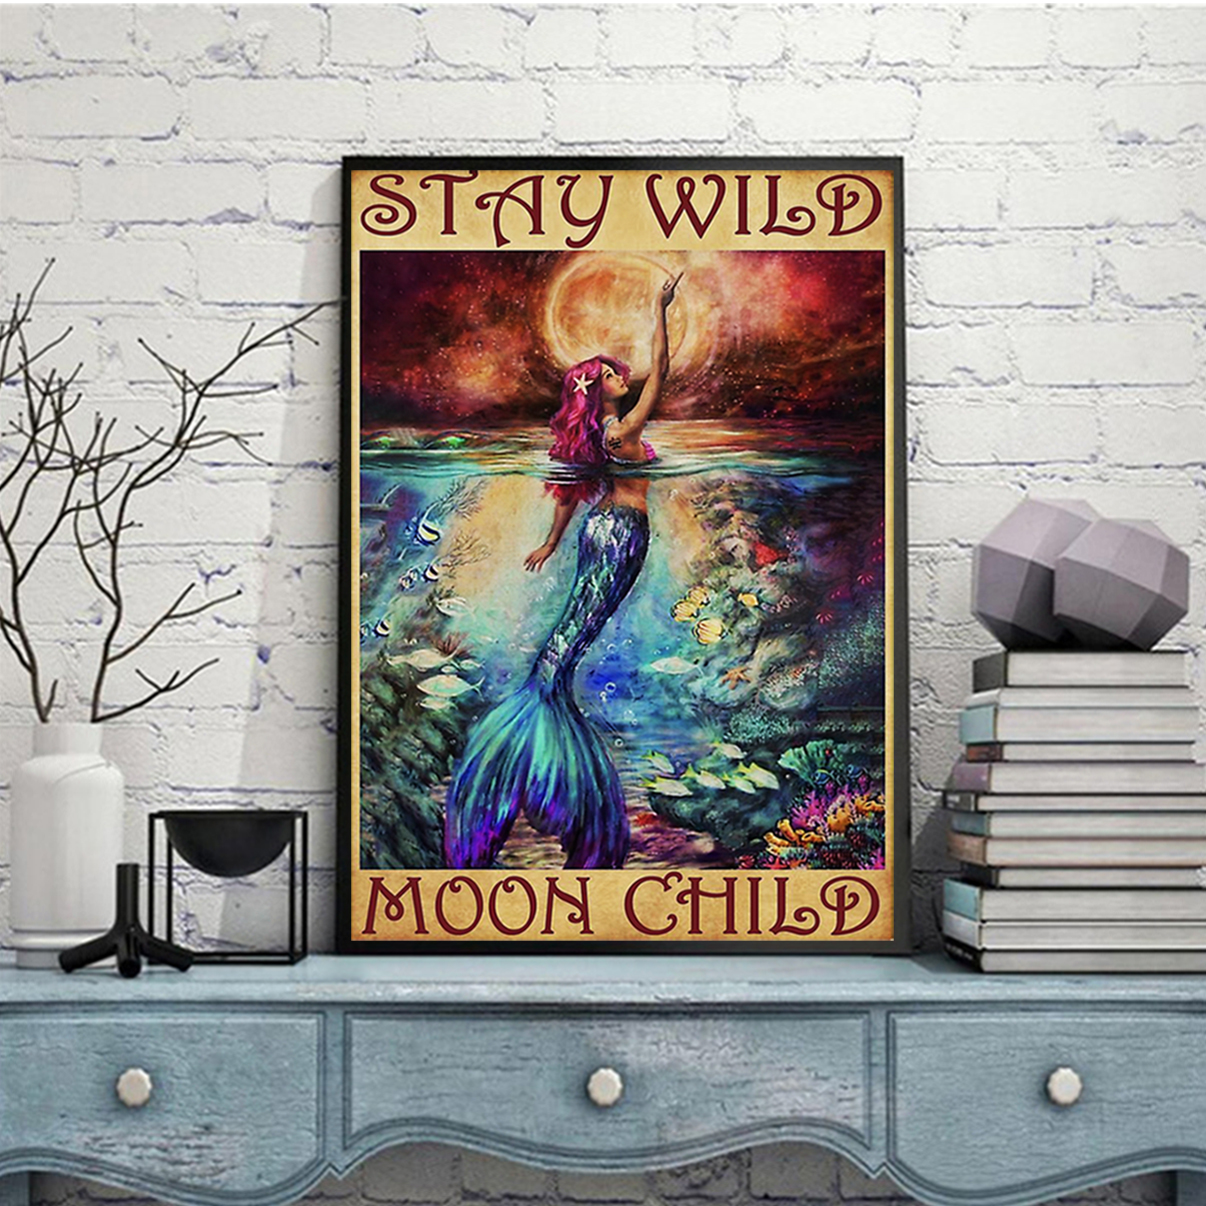 Mermaid stay wild moon child poster A1